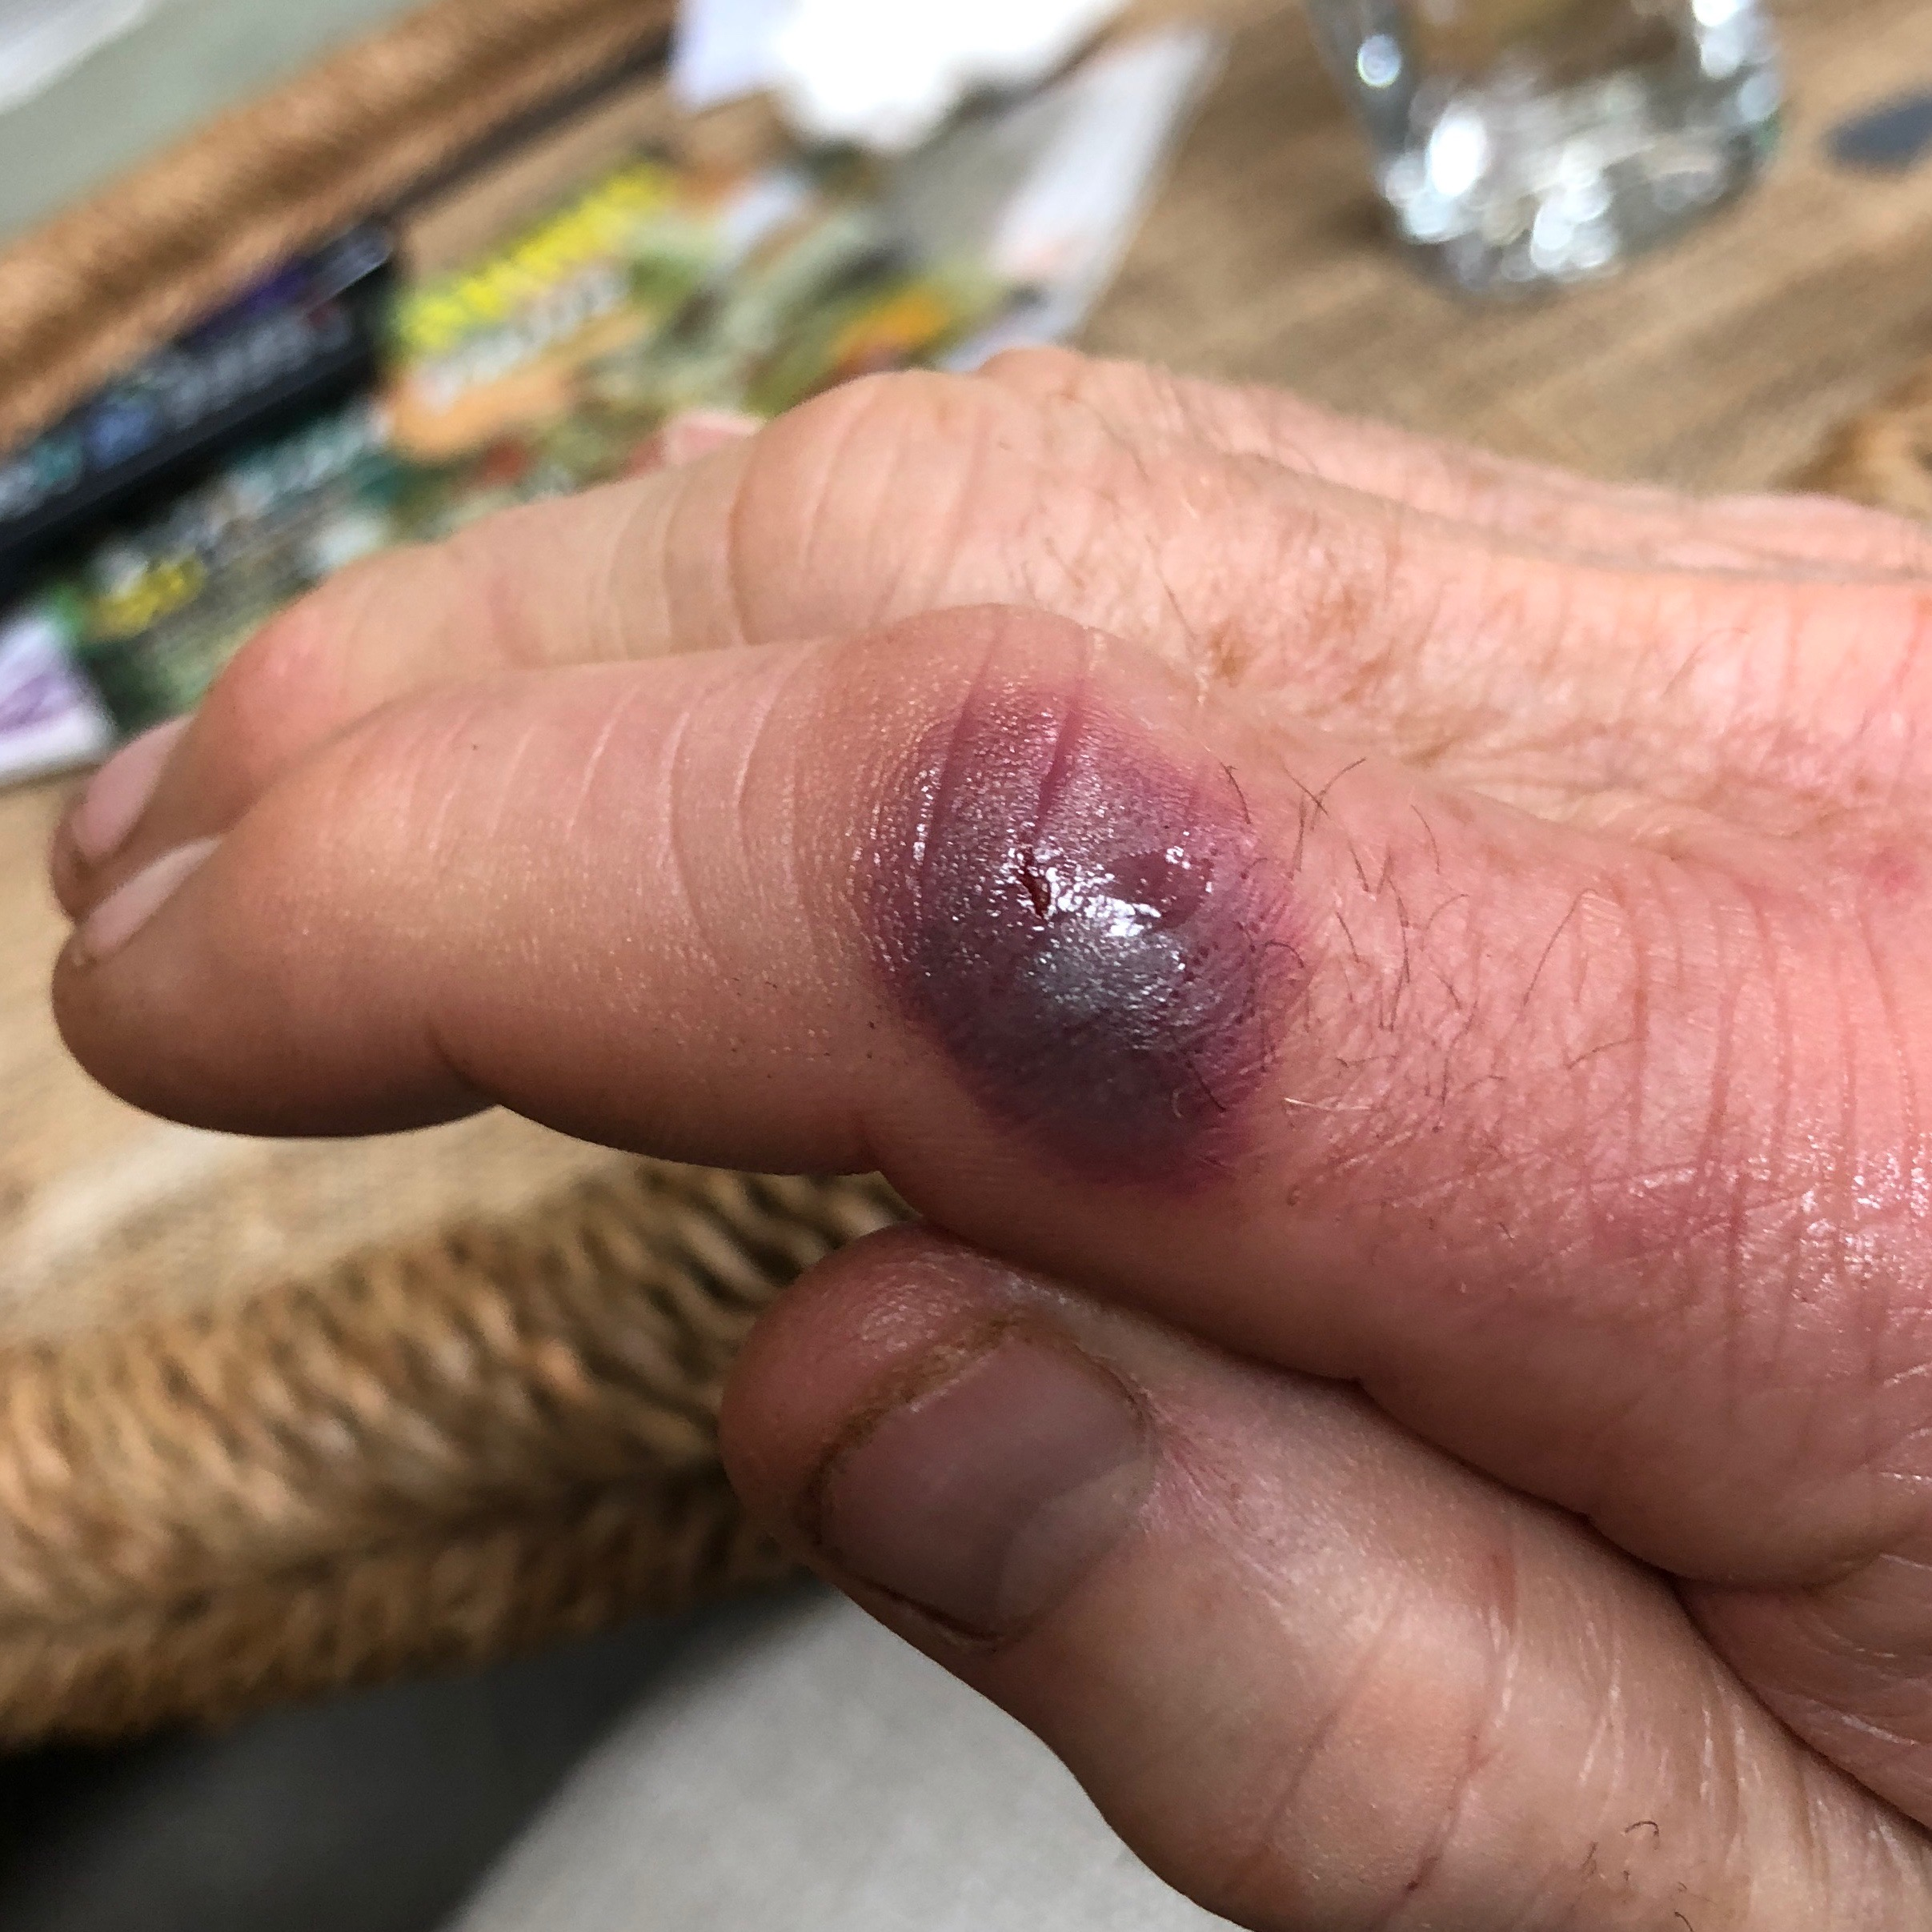 This is what my butt-ugly index finger looked like after it was snared by the teeth of the butt-ugly monk fish. Antibiotics were prescribed, but I was placed on sick-leave for 4 days.